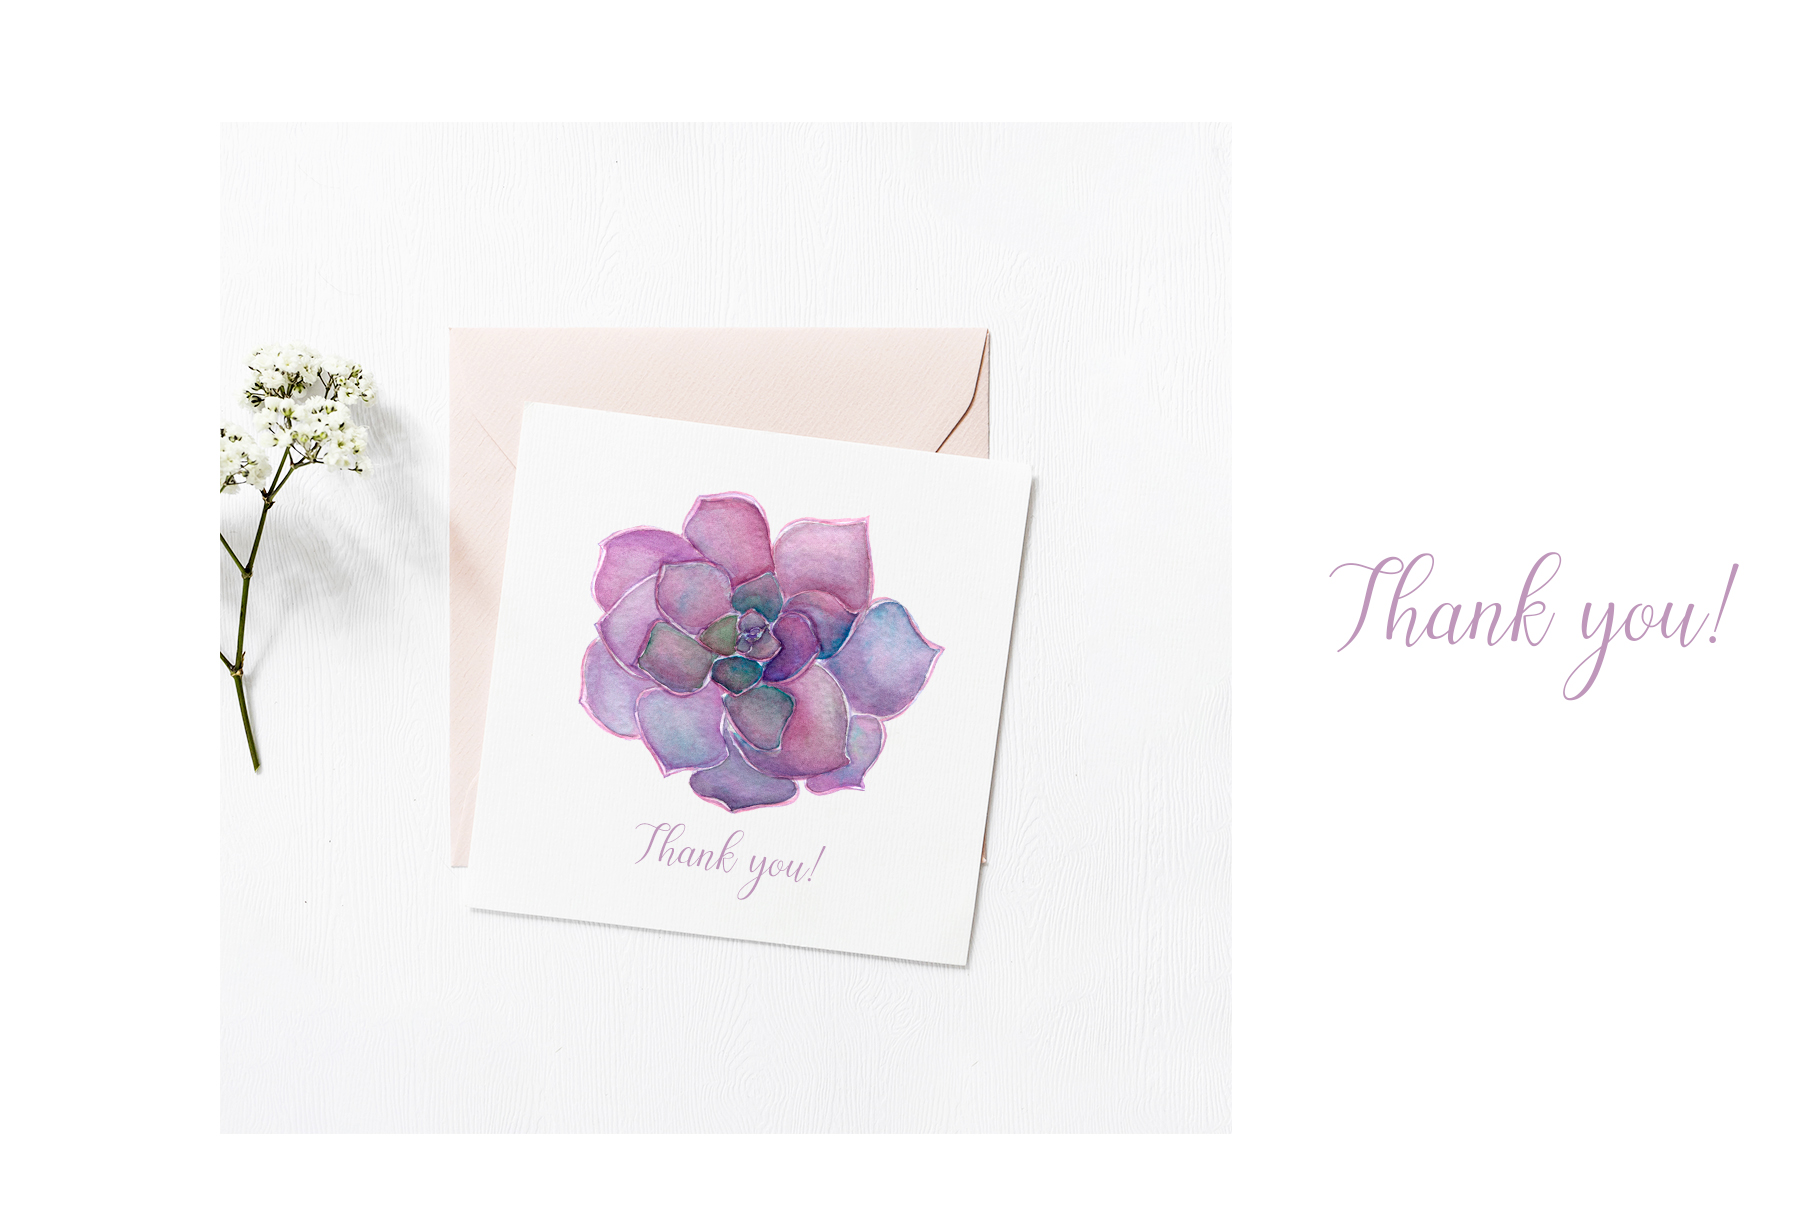 Watercolor floral illustrations example image 4